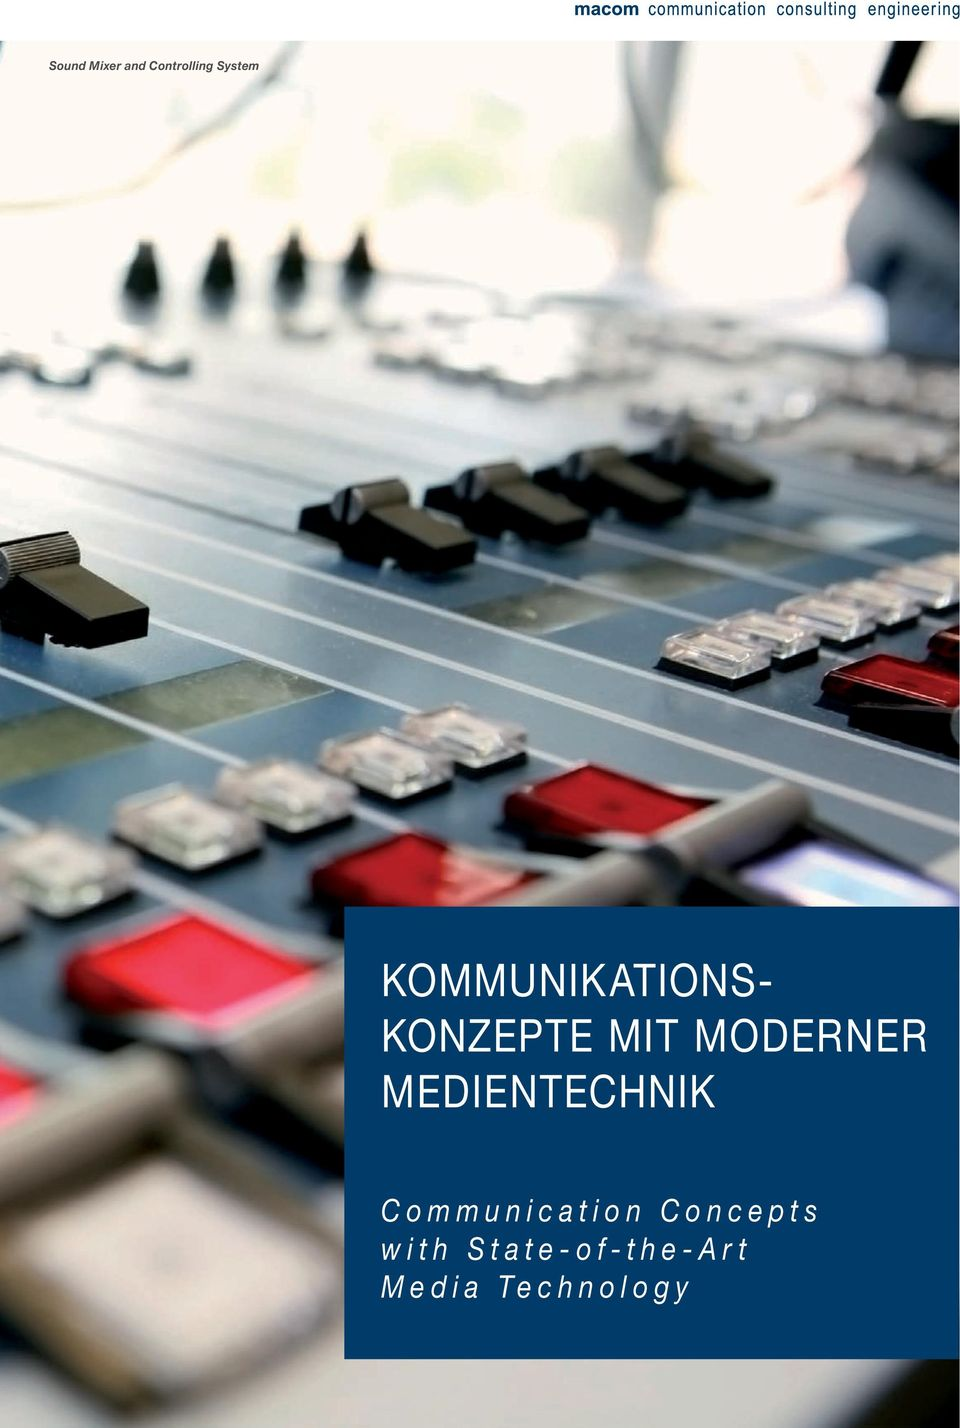 MODERNER MEDIENTECHNIK Communication